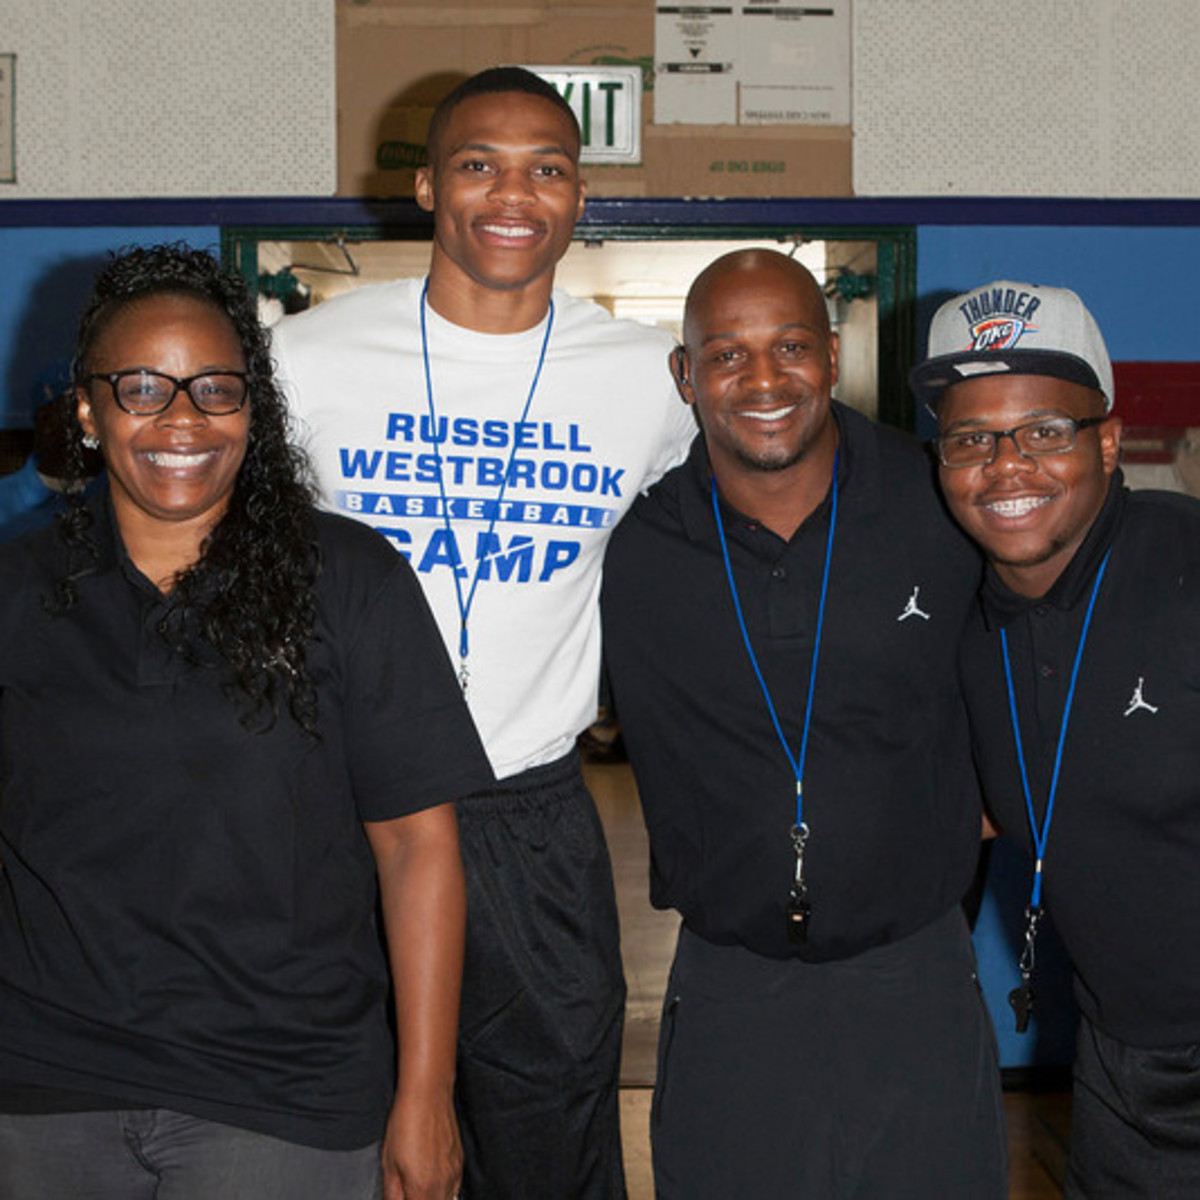 Russell Westbrook with his dad, mum, and brother.